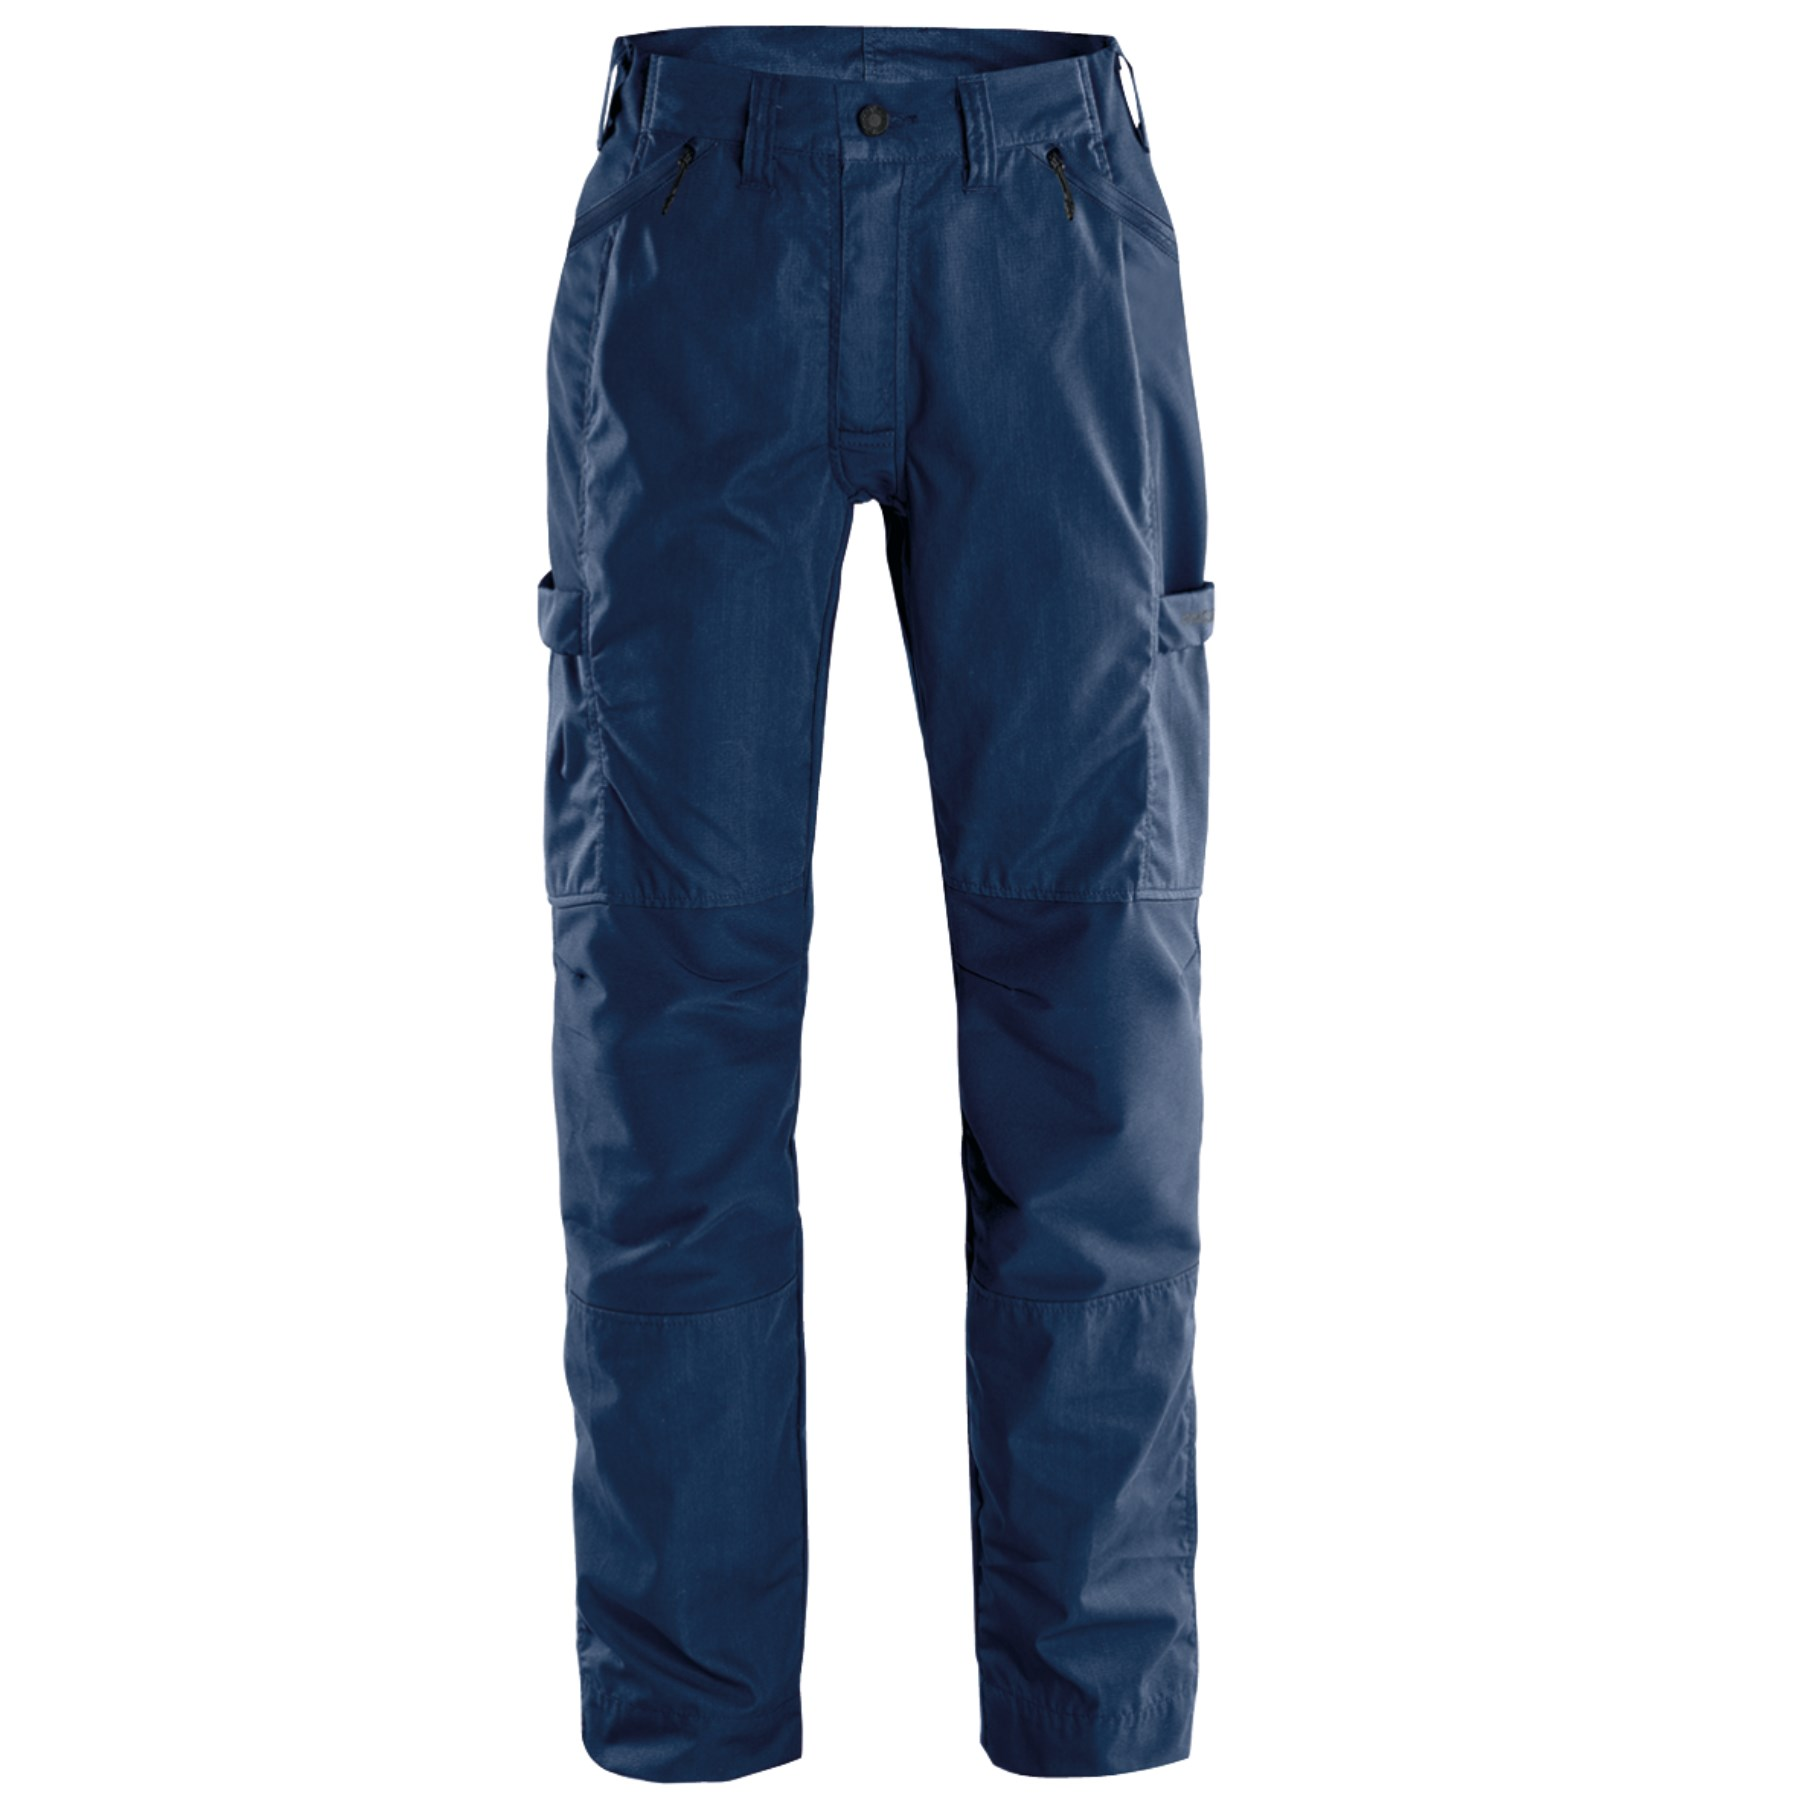 1262671 - Damen Stretch Hose Gr.34 dunkelblau